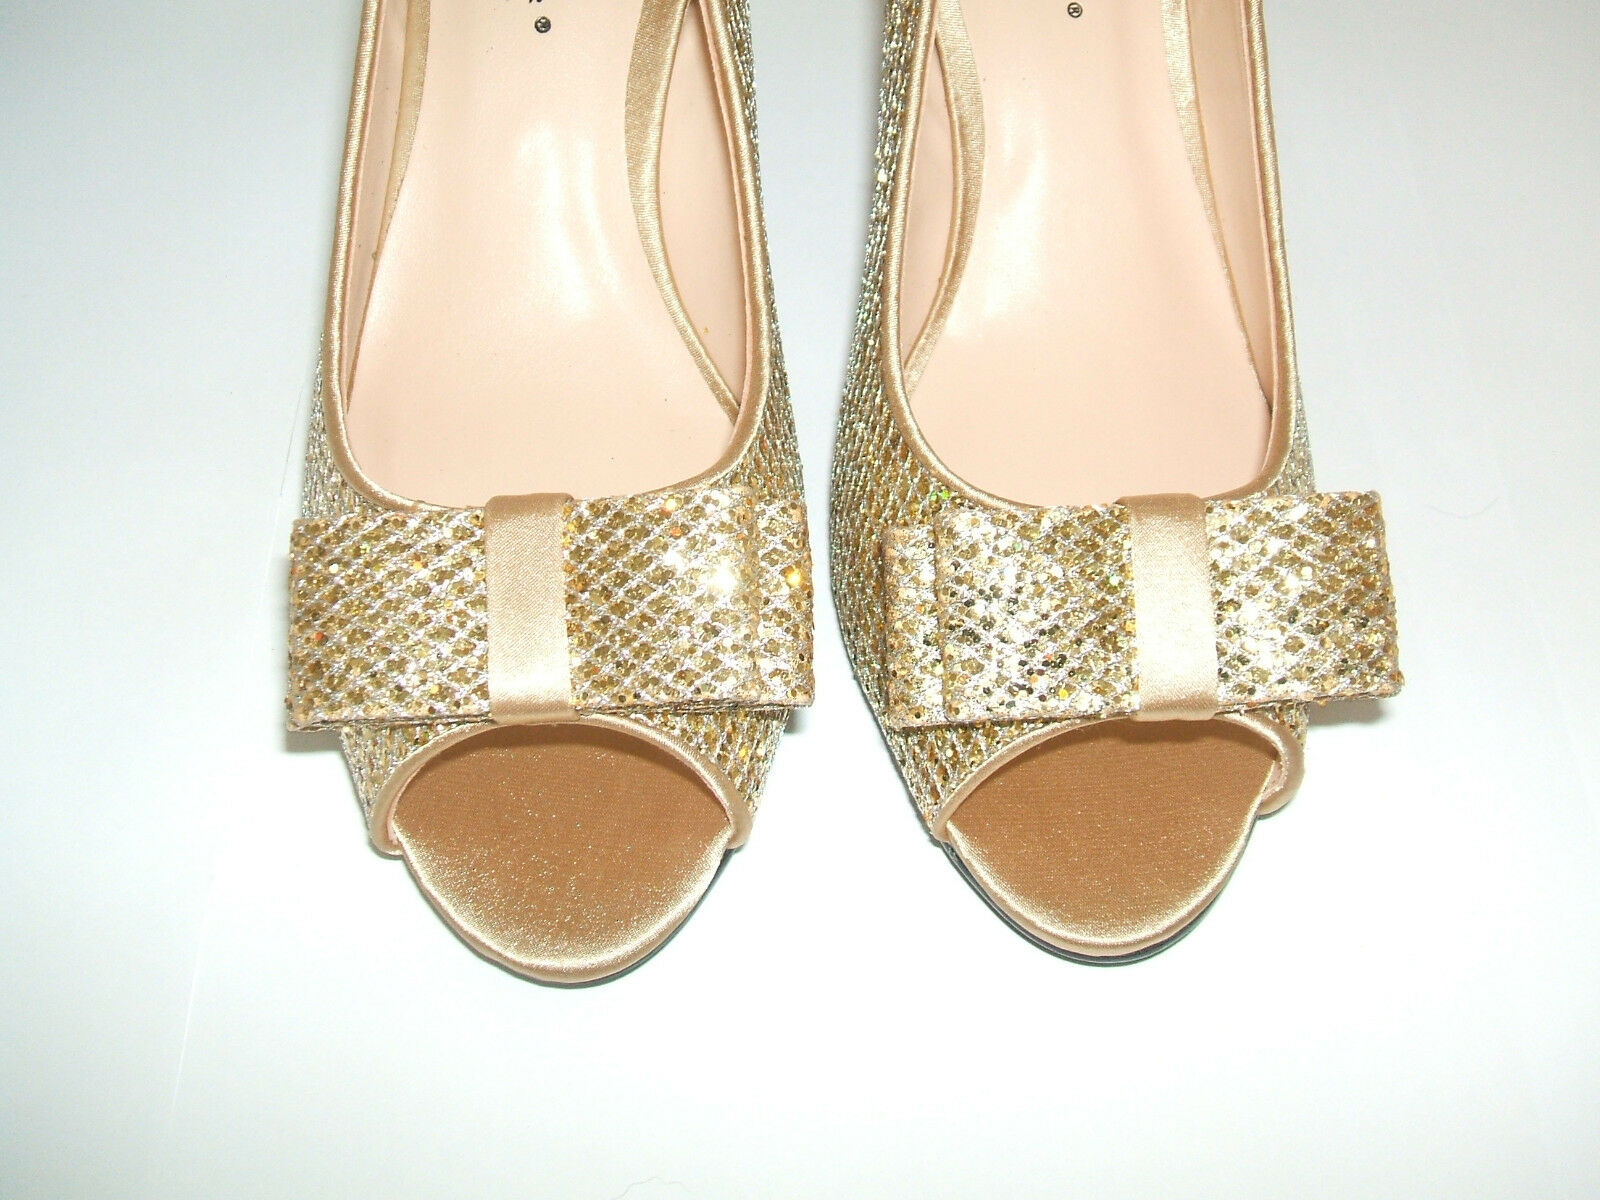 NEW LOW LUNAR SIZE 3.5 4 GOLD GLITTER SPECIAL OCCASION LOW NEW MID HEEL SLINGBACK Schuhe fb7c51